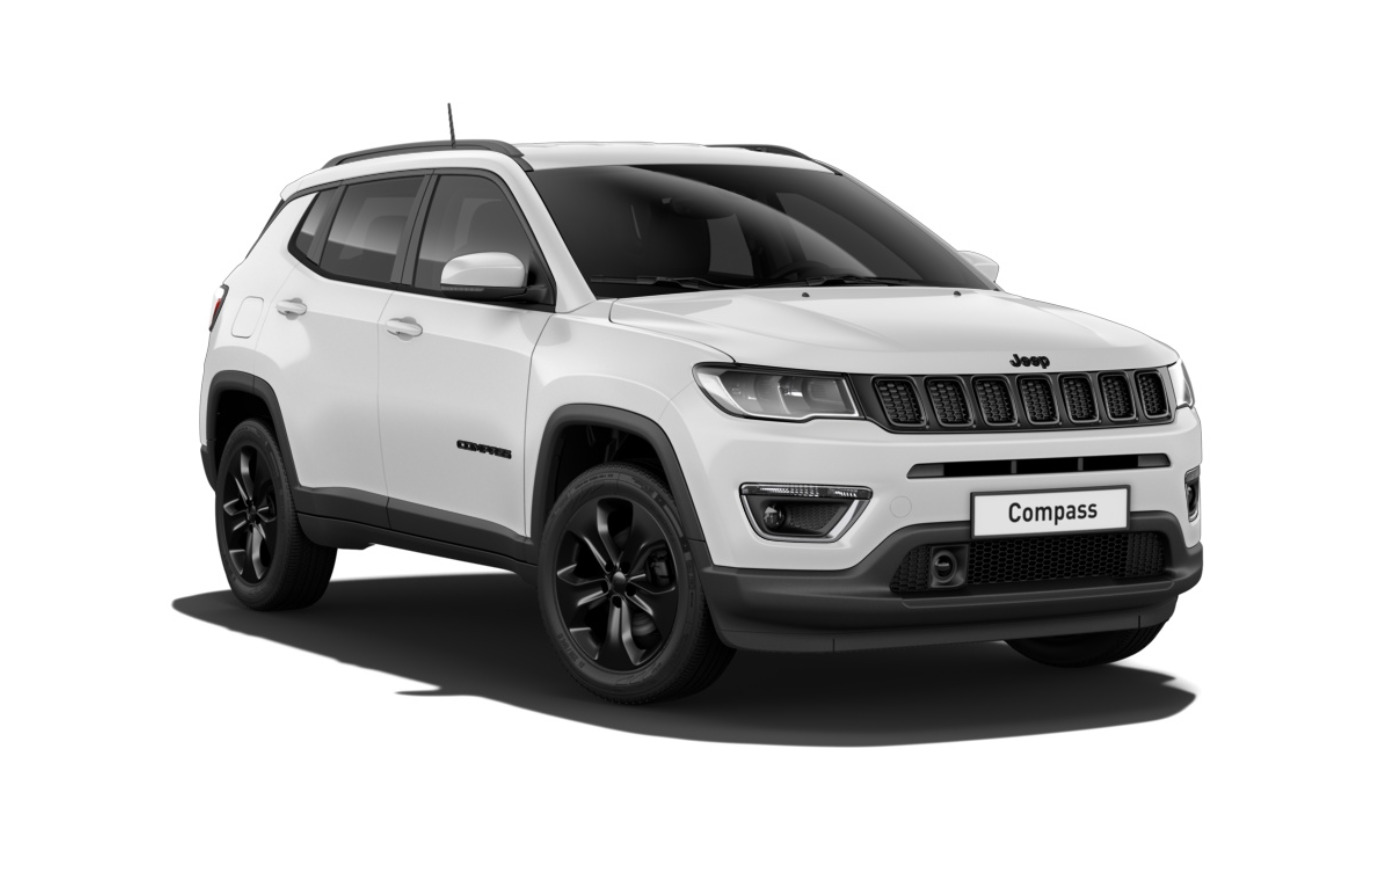 Jeep Compass 2.0 Multijet 140 Night Eagle 5dr